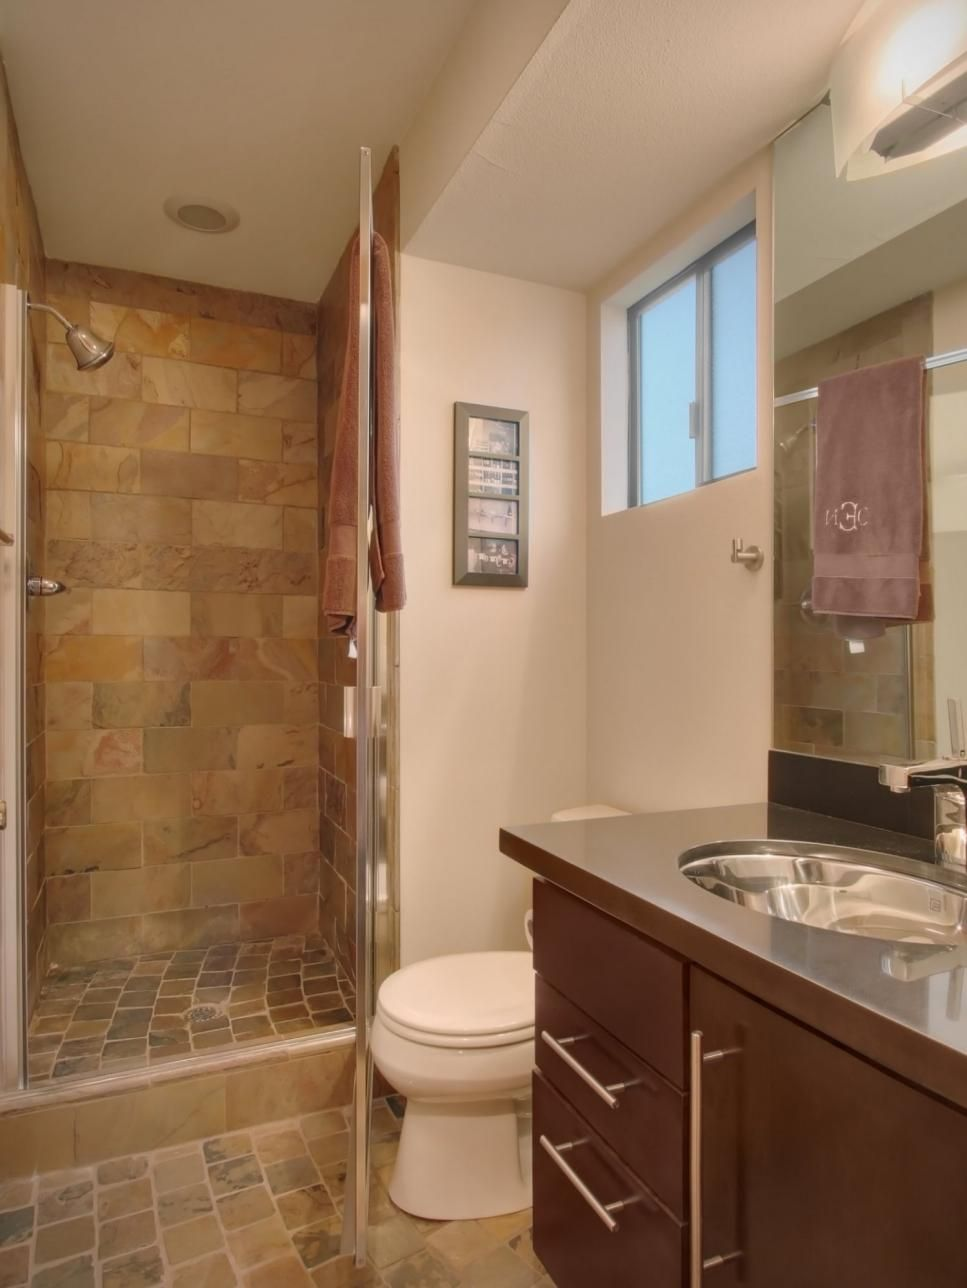 Small Bathroom Features Earth Tone Tile In 2019